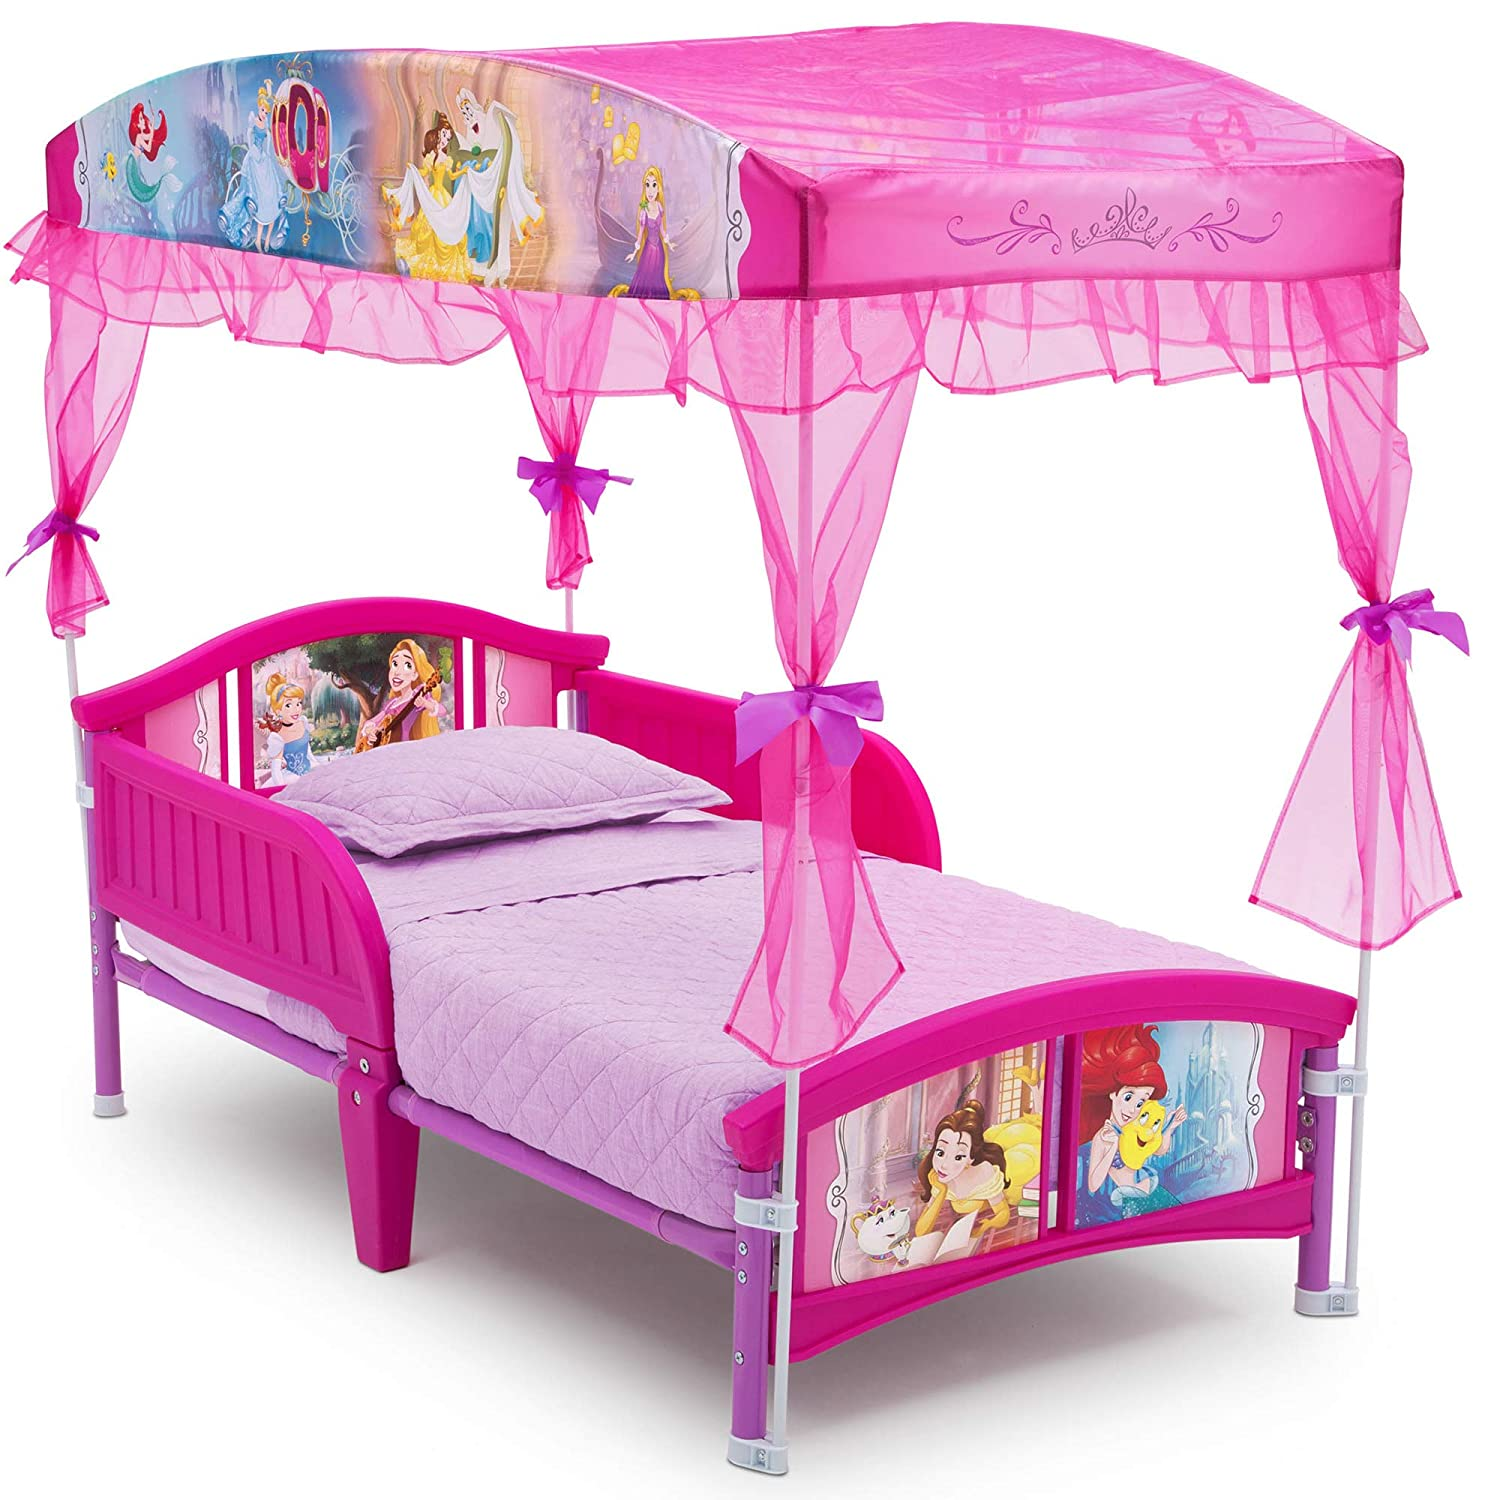 Delta Children Plastic Toddler Bed